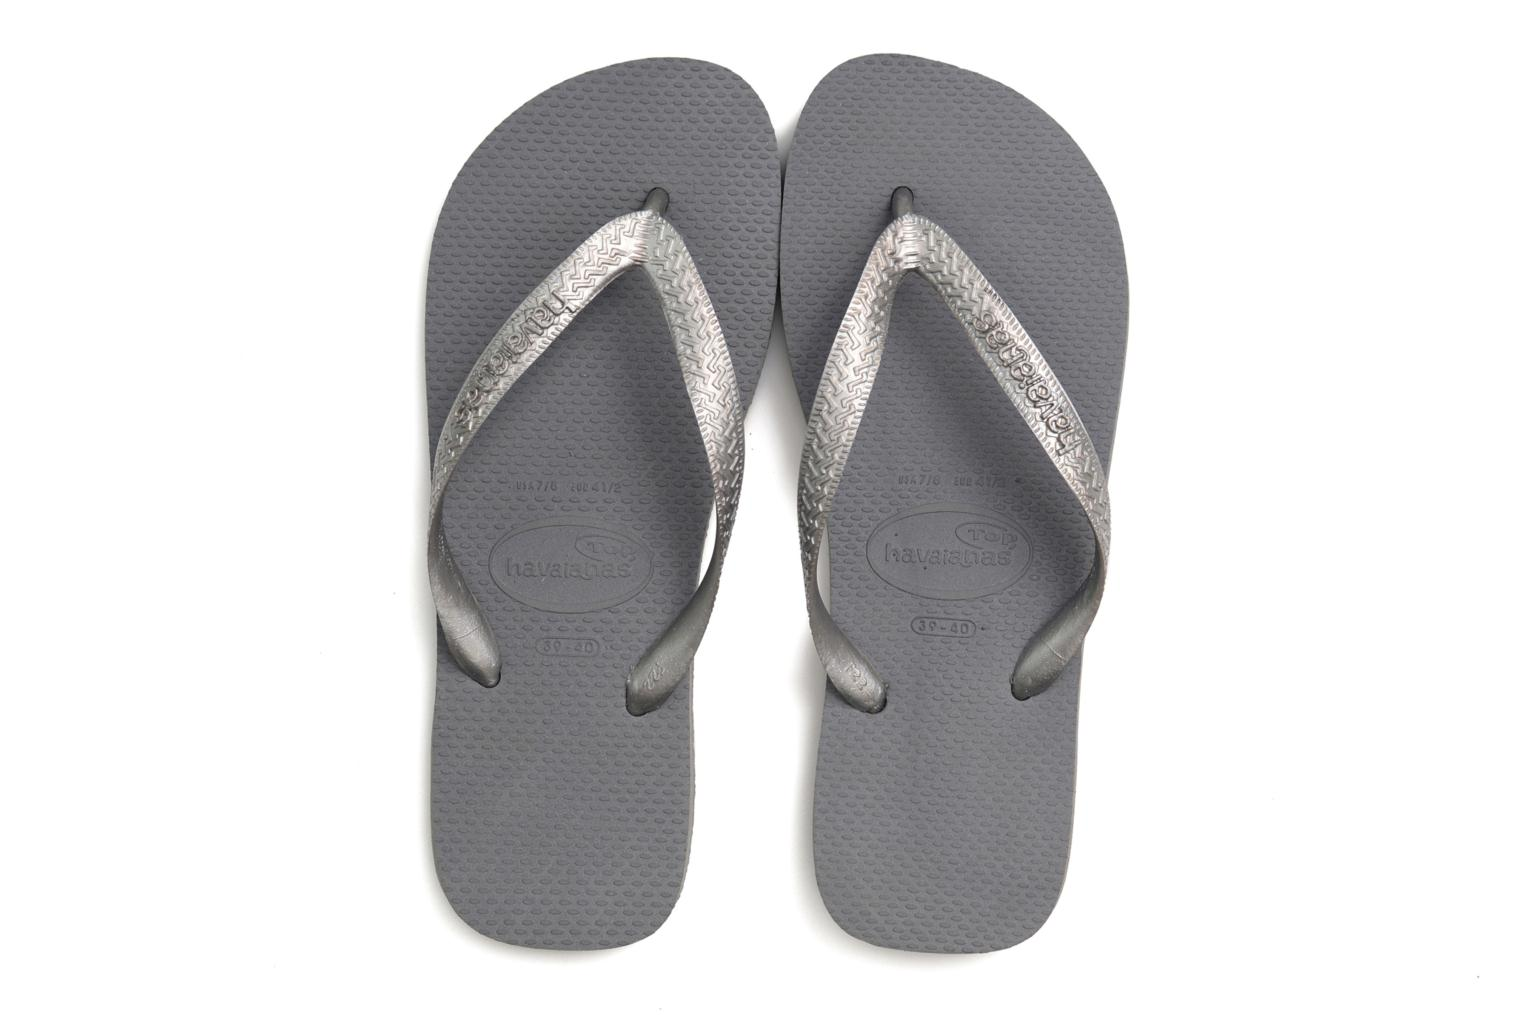 Chanclas Havaianas Top Metallic F Gris vista 3/4